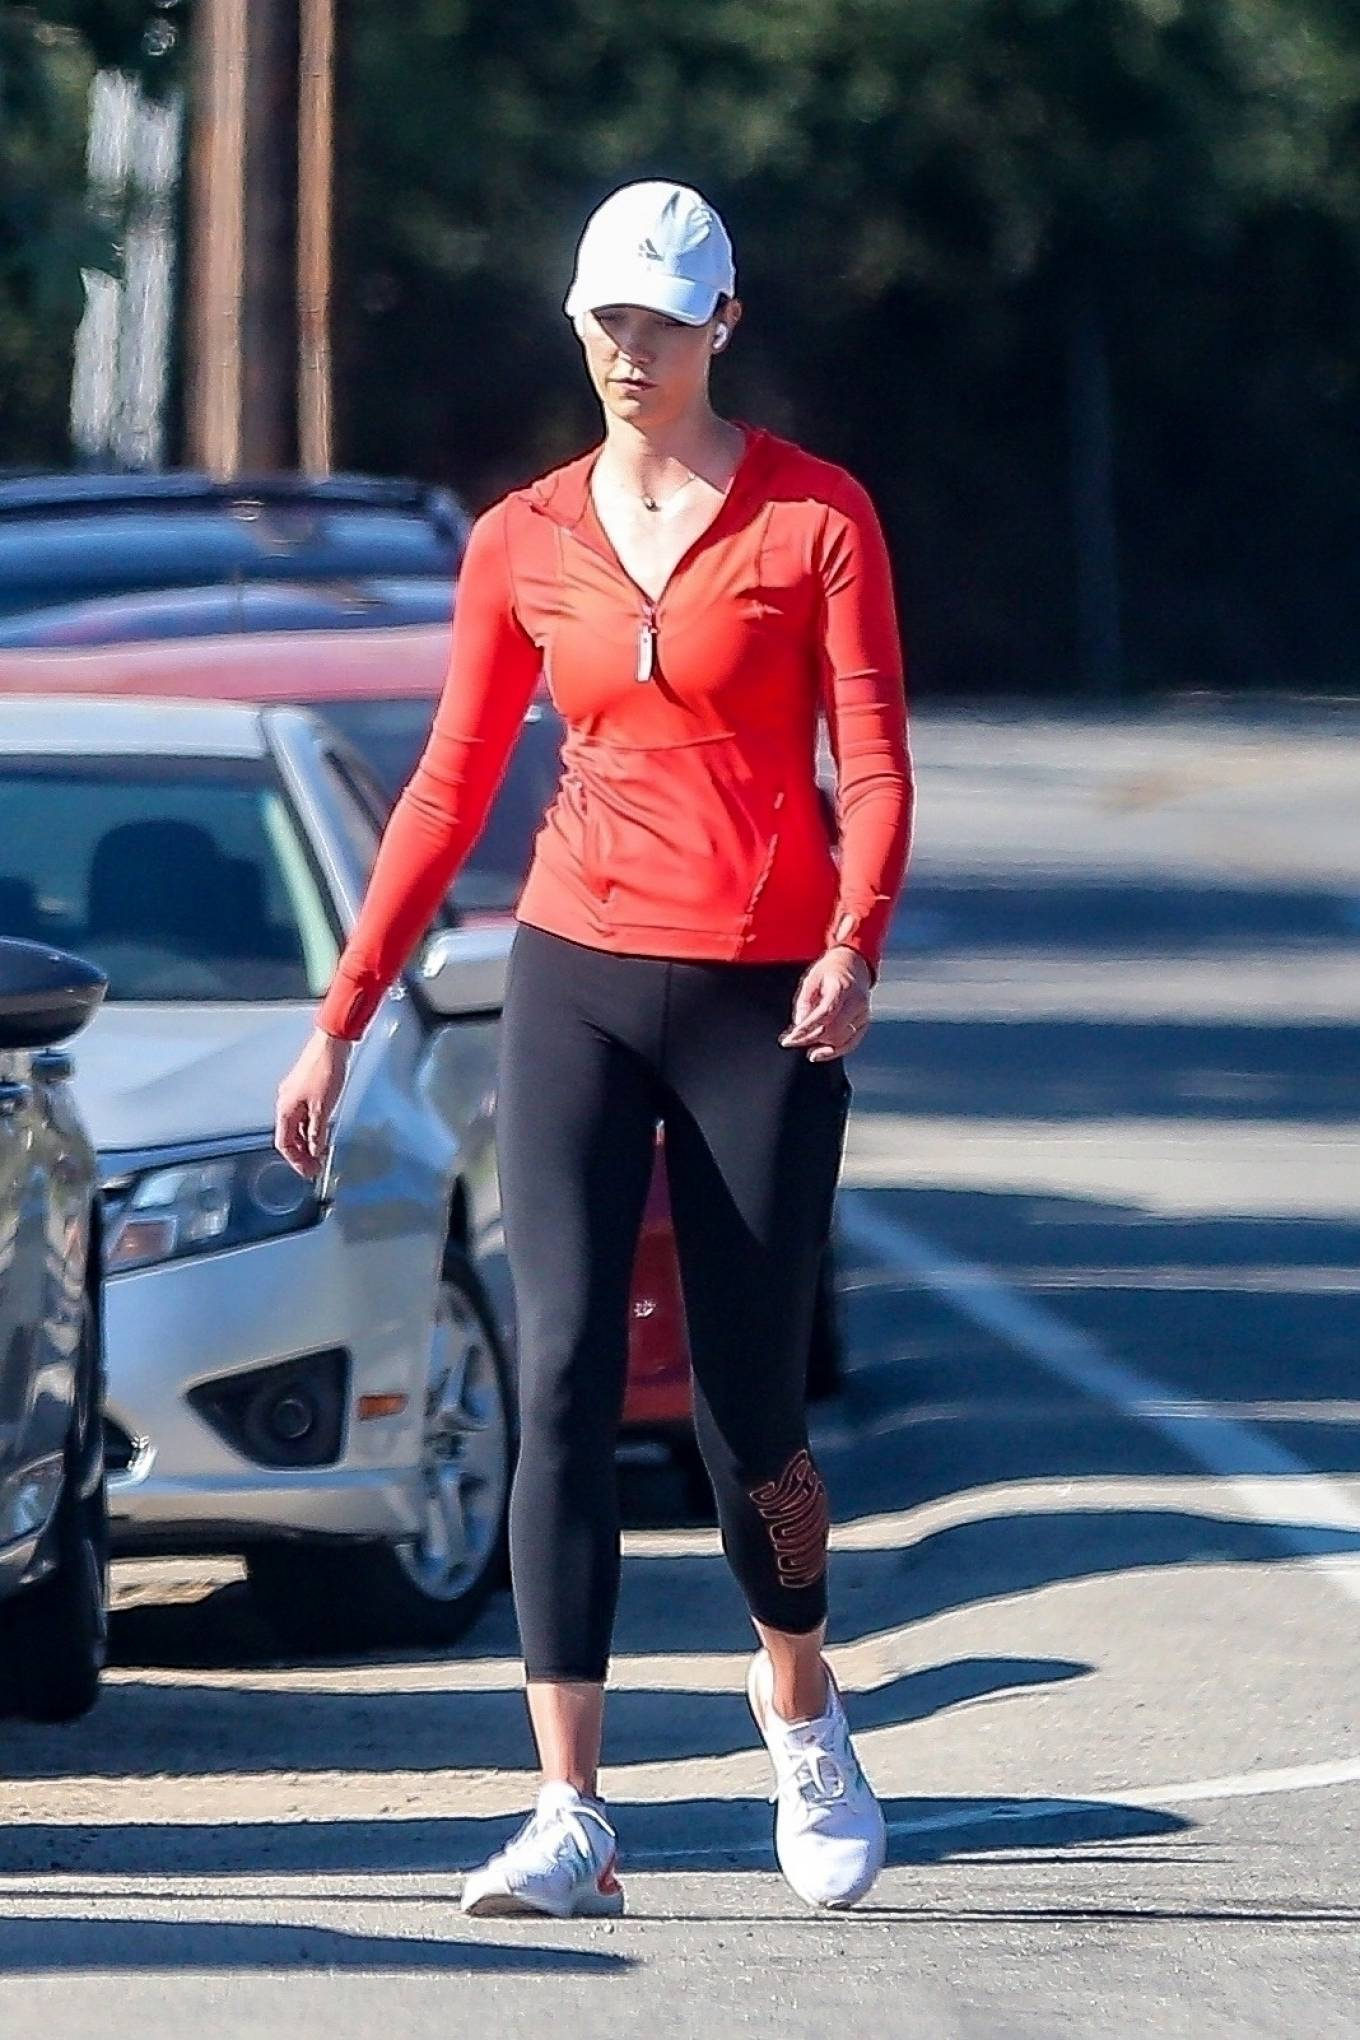 Karlie Kloss wearing Skinny black high waist ankle length workout leggings by Adidas with a stretch fabric